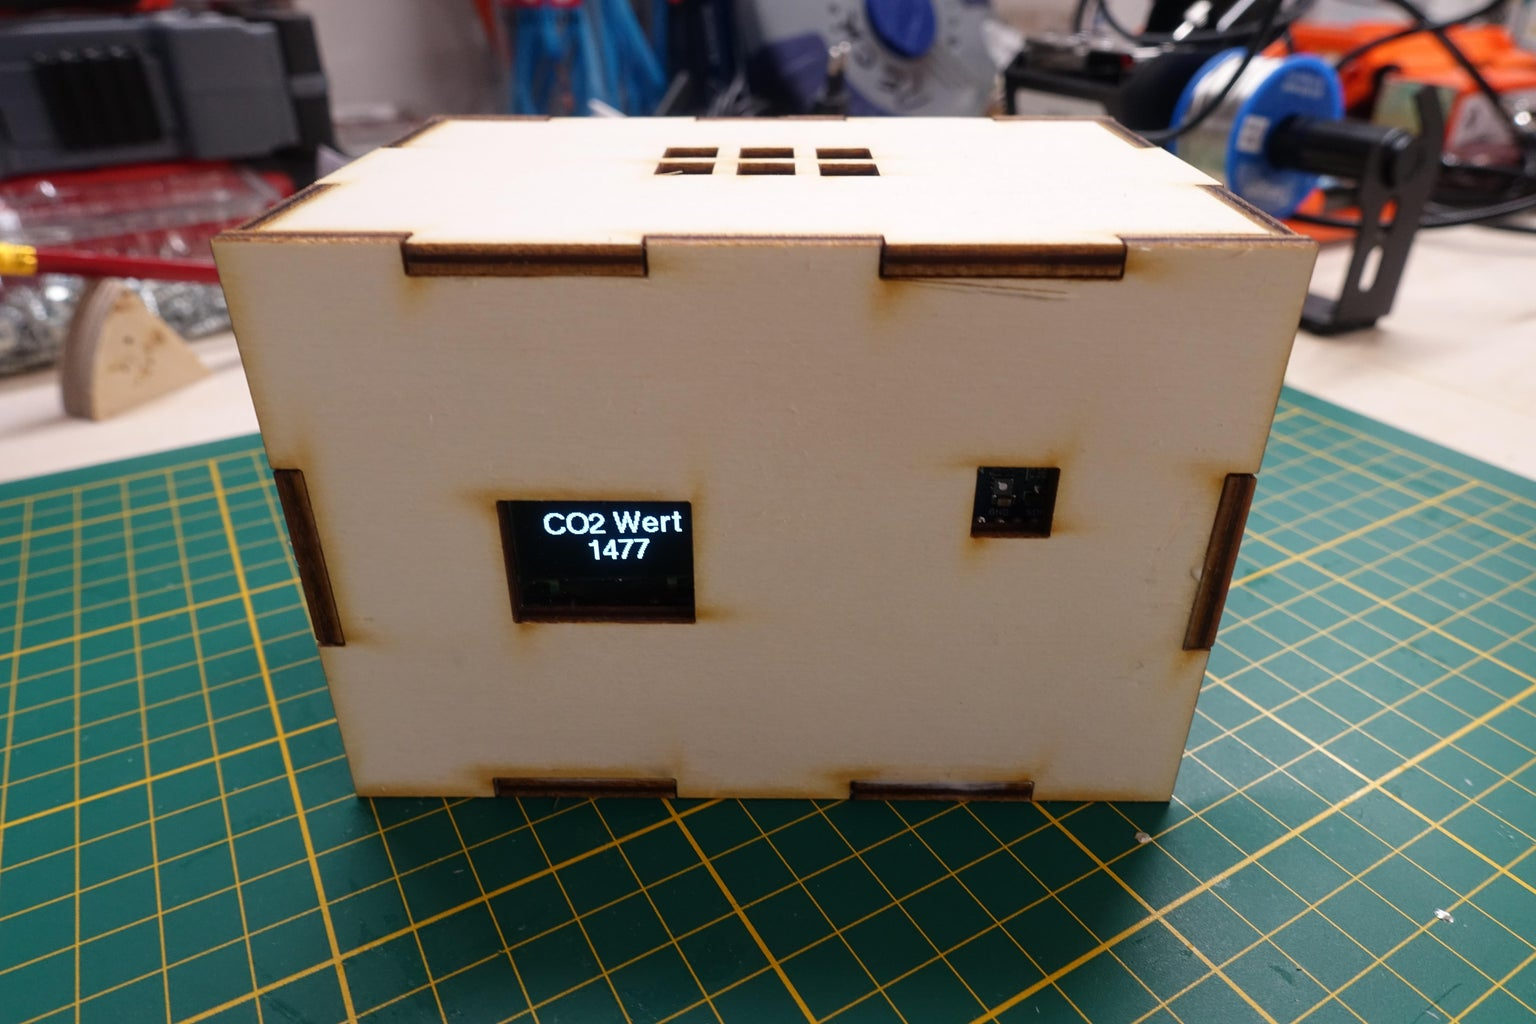 Plug & Play CO2 Sensor Display With NodeMCU/ESP8266 for Schools, Kindergardens or Your Home